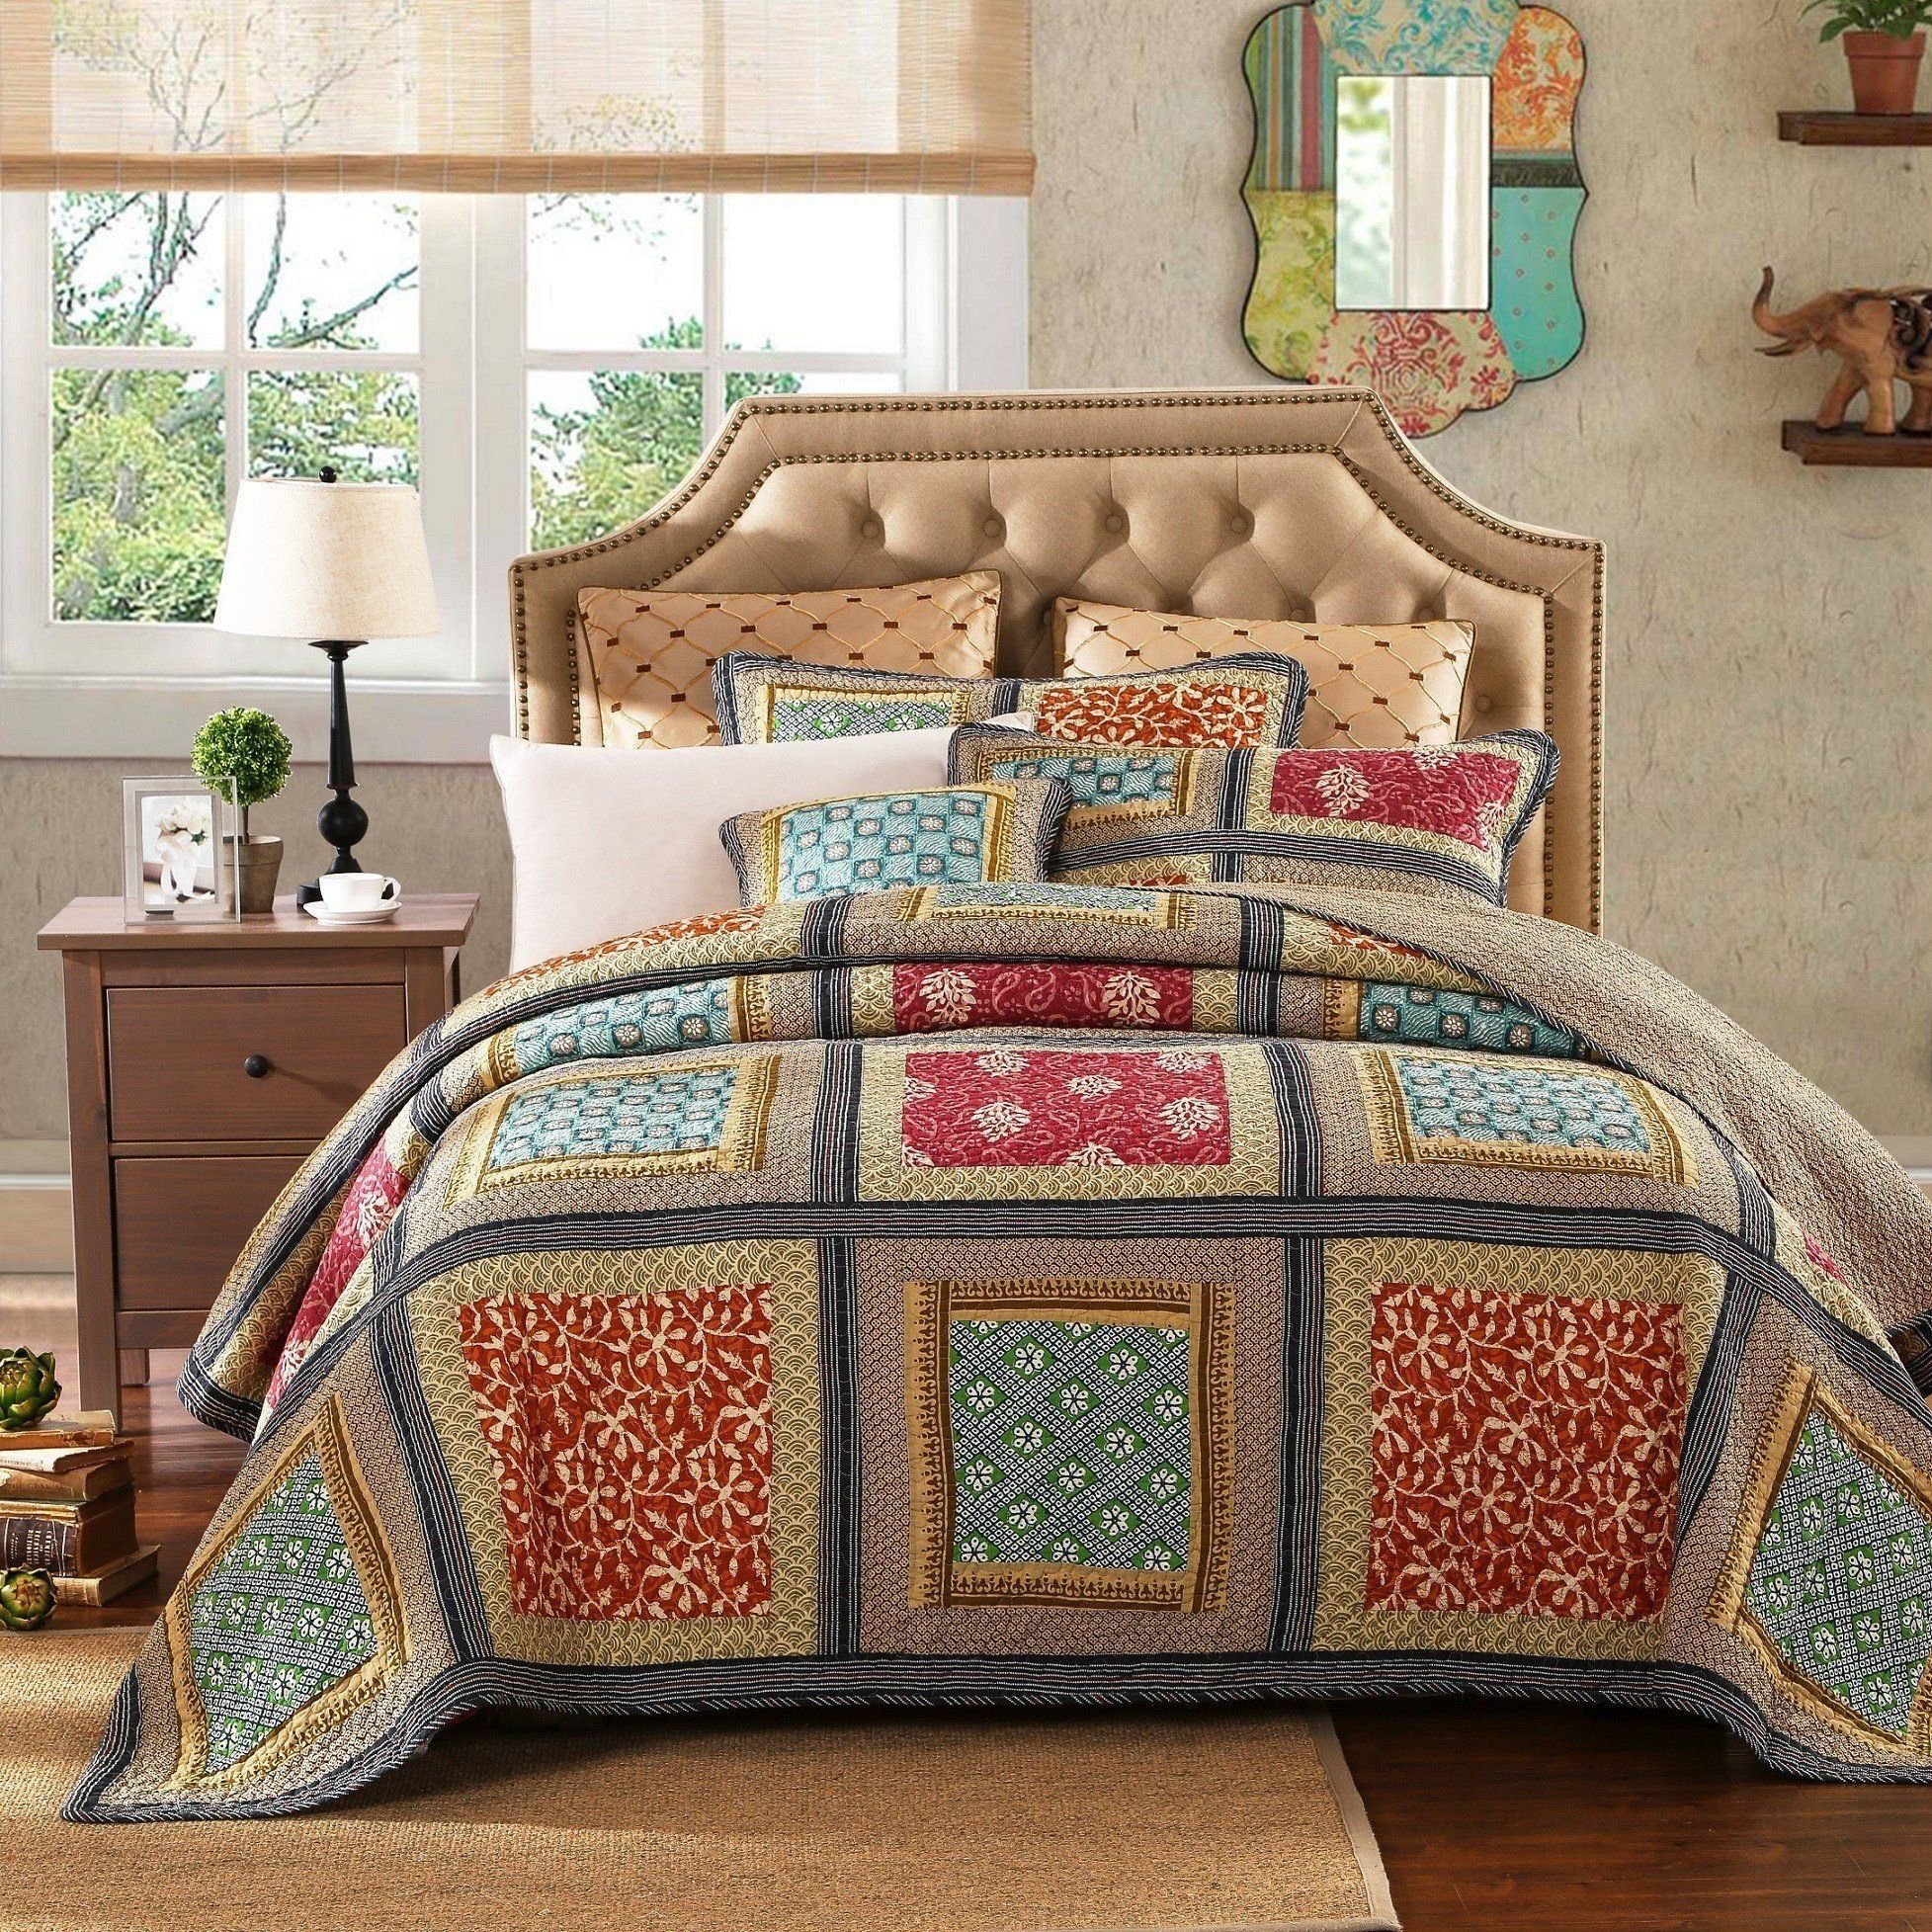 Dada bedding ve jhw 546 ck lavishly bohemian patchwork quilted bedspread set cal king multicolored